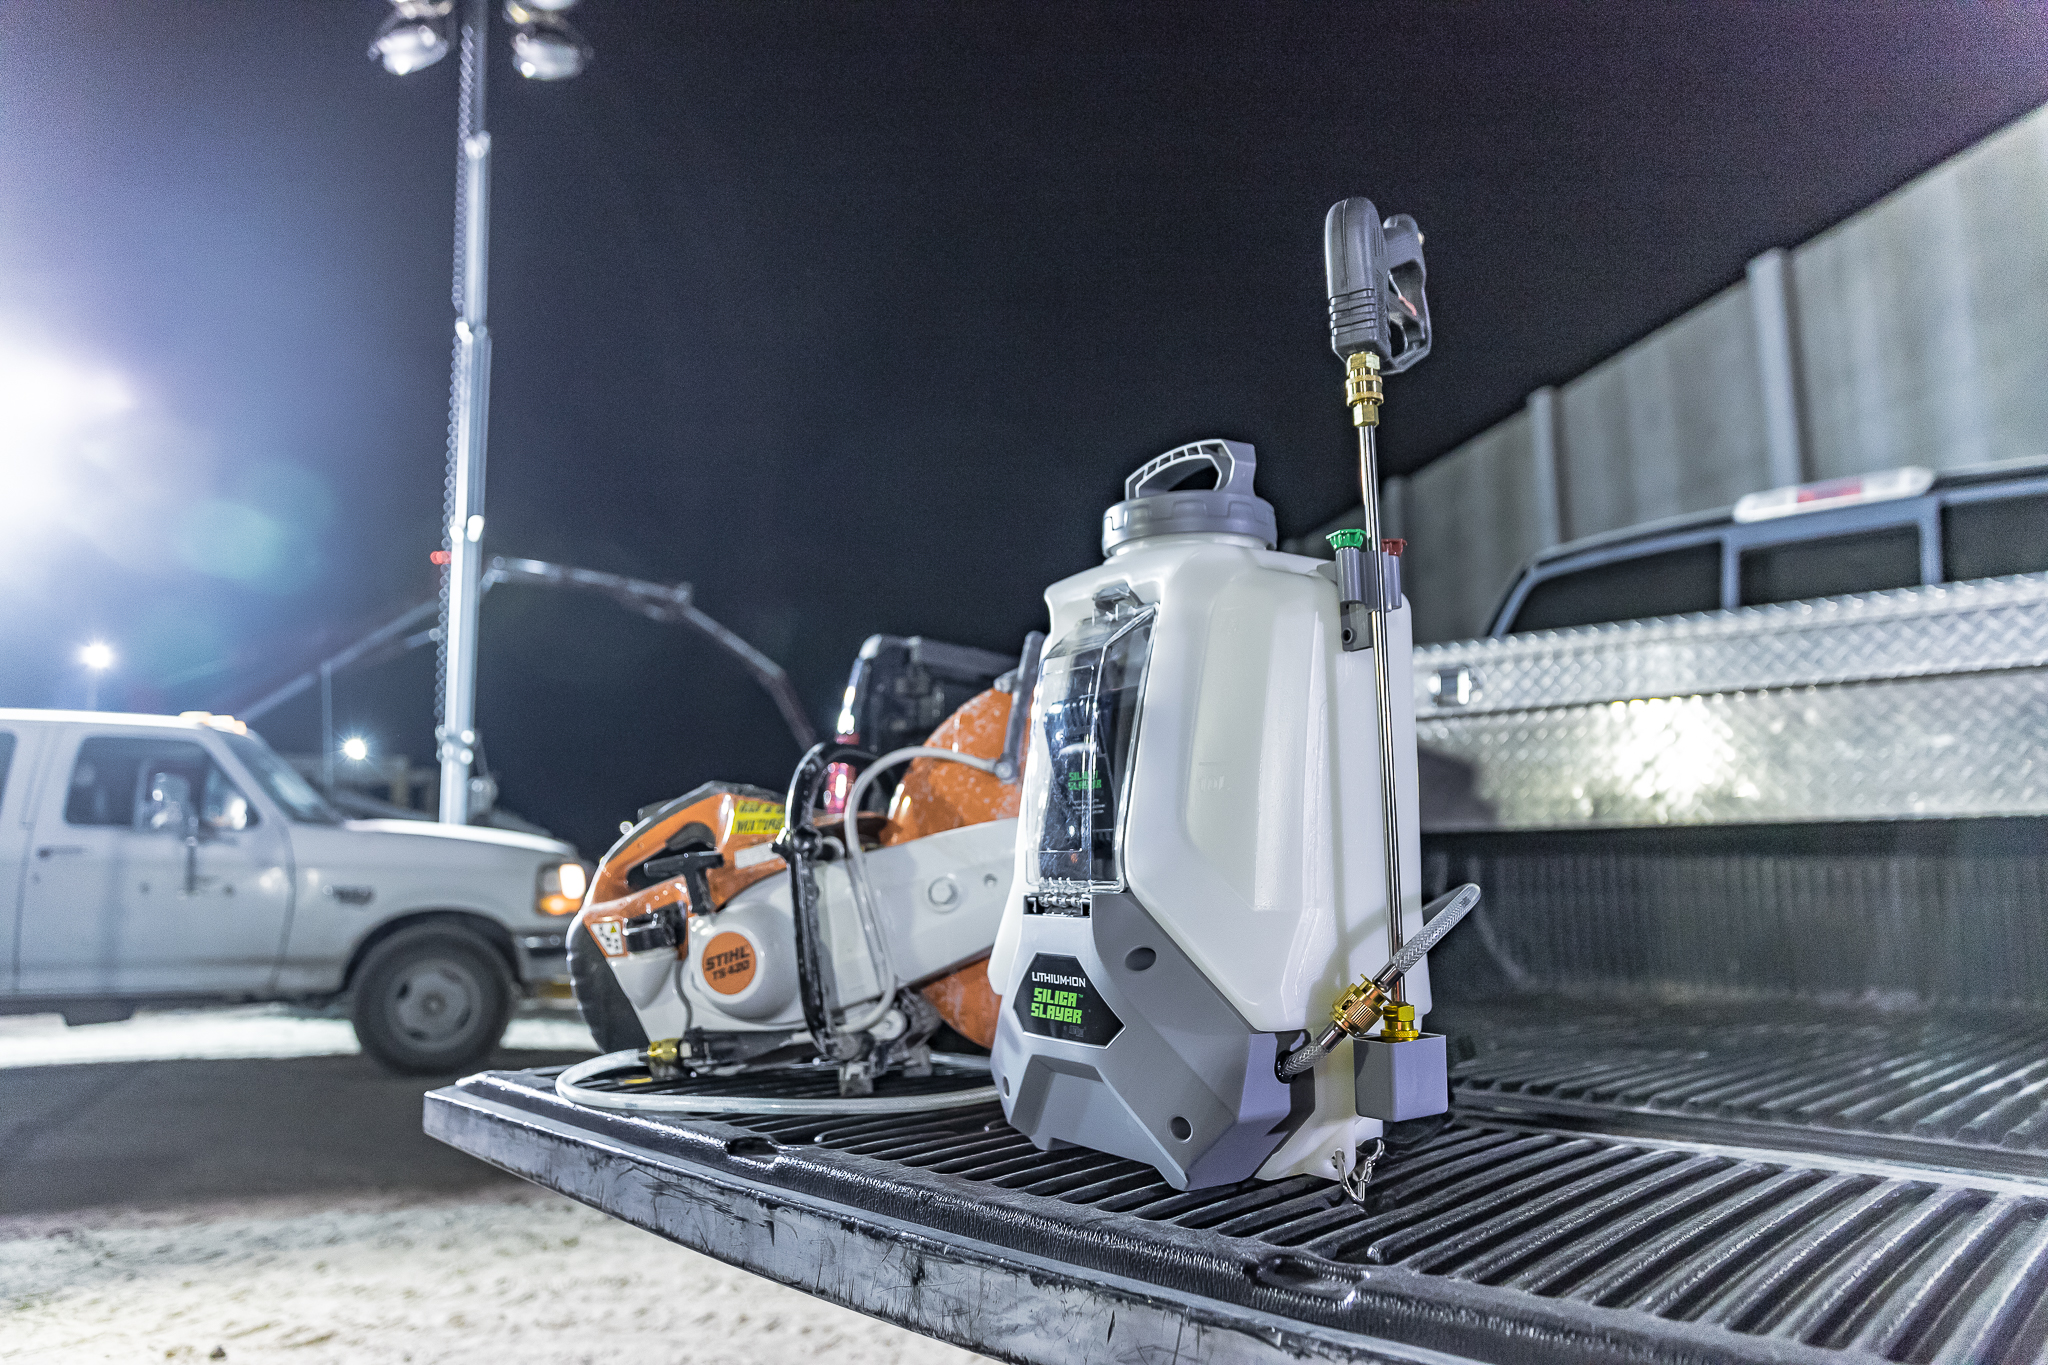 a 4-gallon Silica Slayer battery powered backpack sprayer sitting on the back of a pickup truck at night next to a cut saw